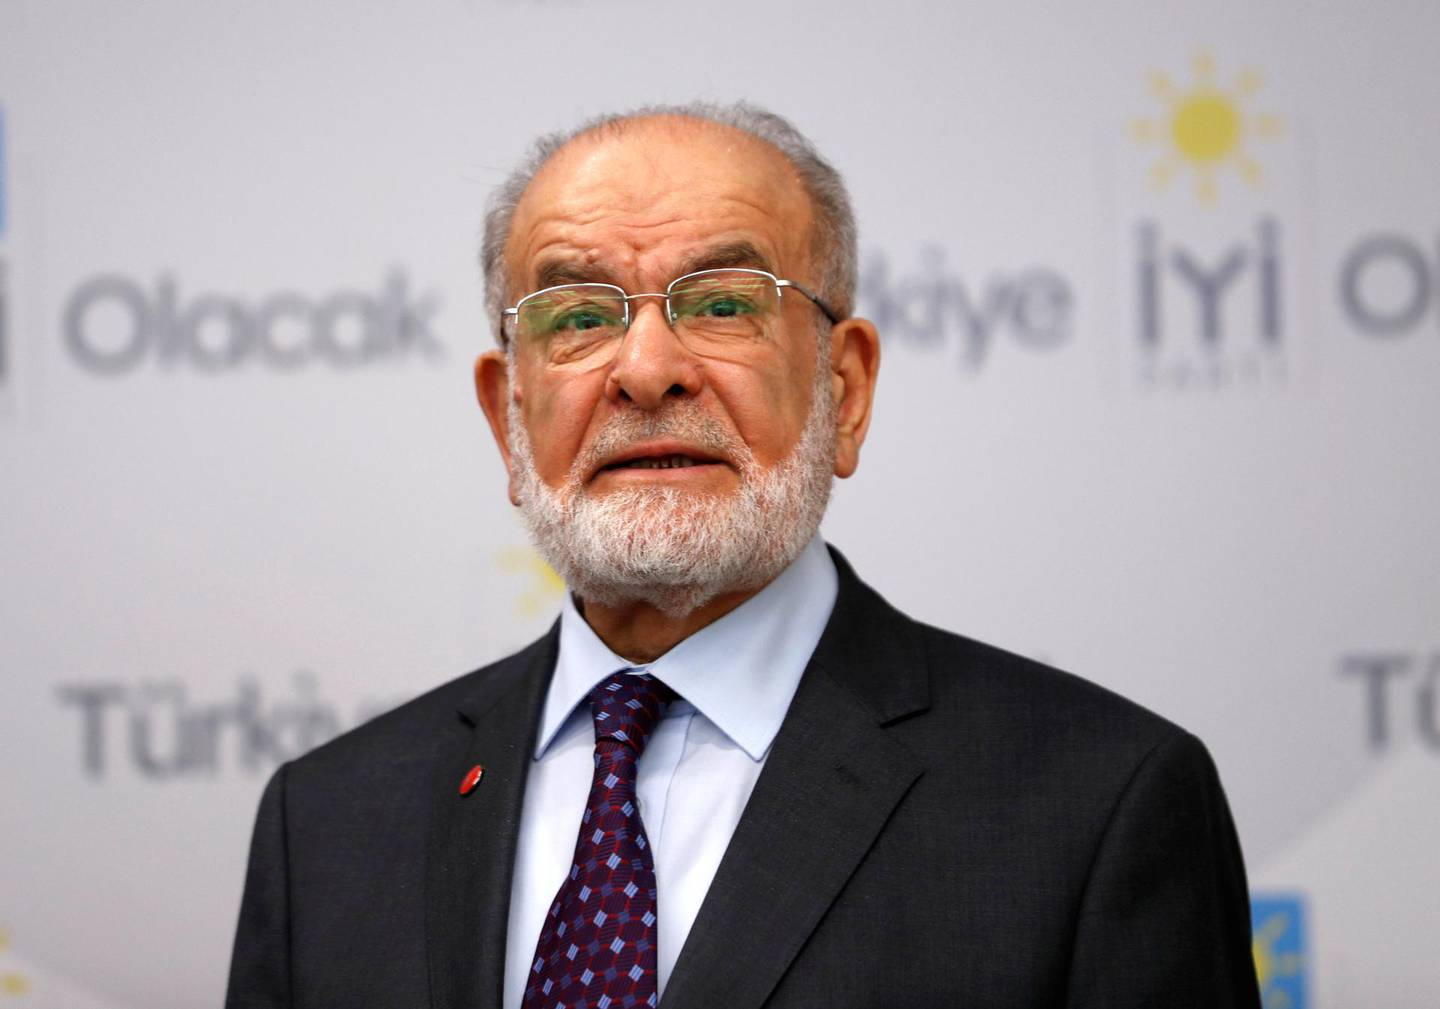 Temel Karamollaoglu, the leader of Islamist Saadet Party, is seen during a news conference with Iyi Party leader Meral Aksener (not pictured) in Ankara, Turkey April 24, 2018. Picture taken April 24, 2018. REUTERS/Murad Sezer - RC12A72C67C0